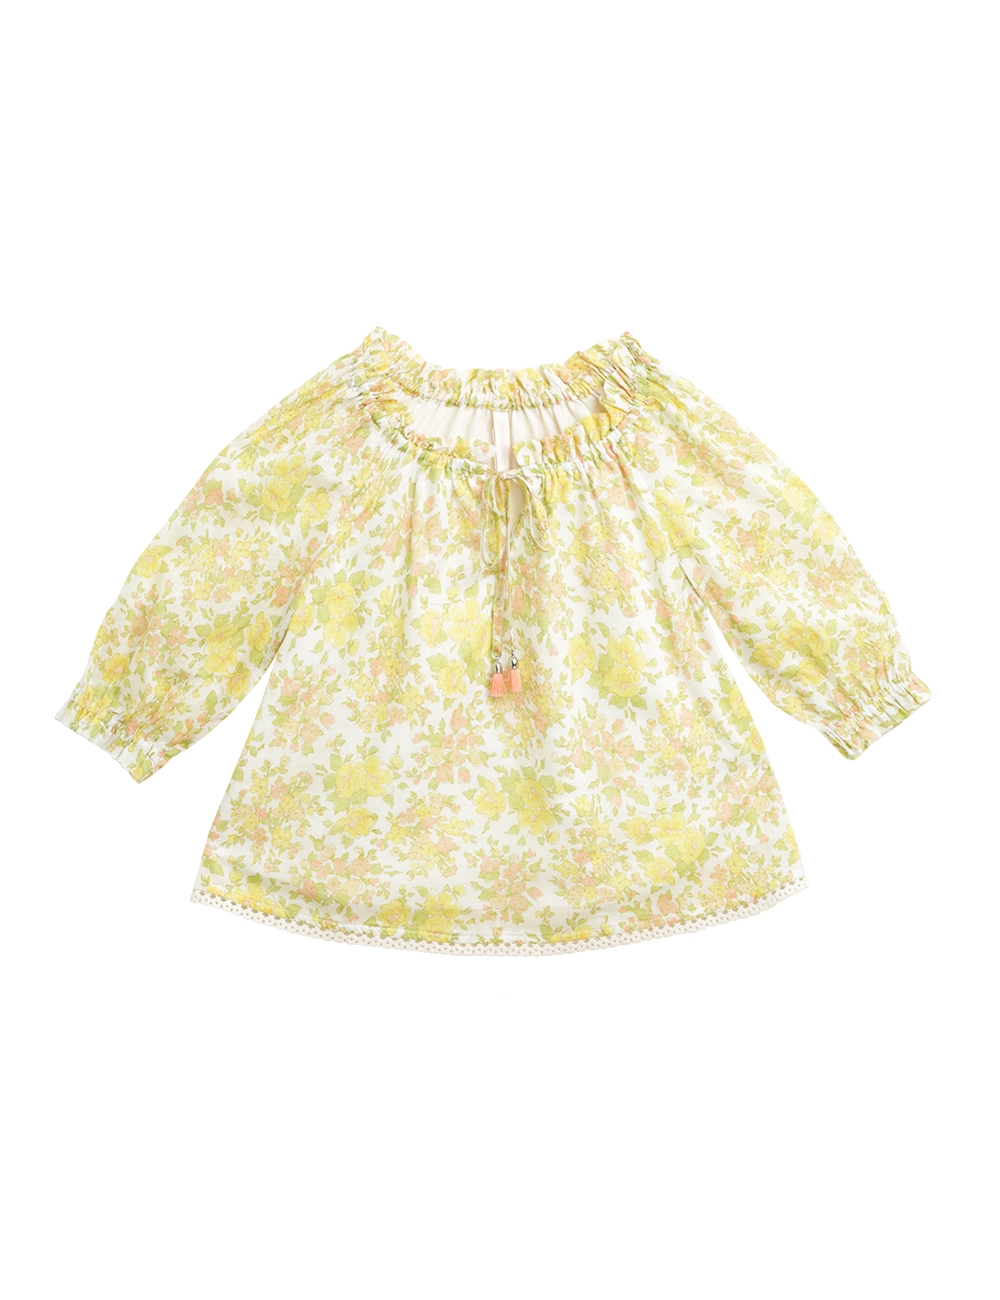 Goldie Gathered Top